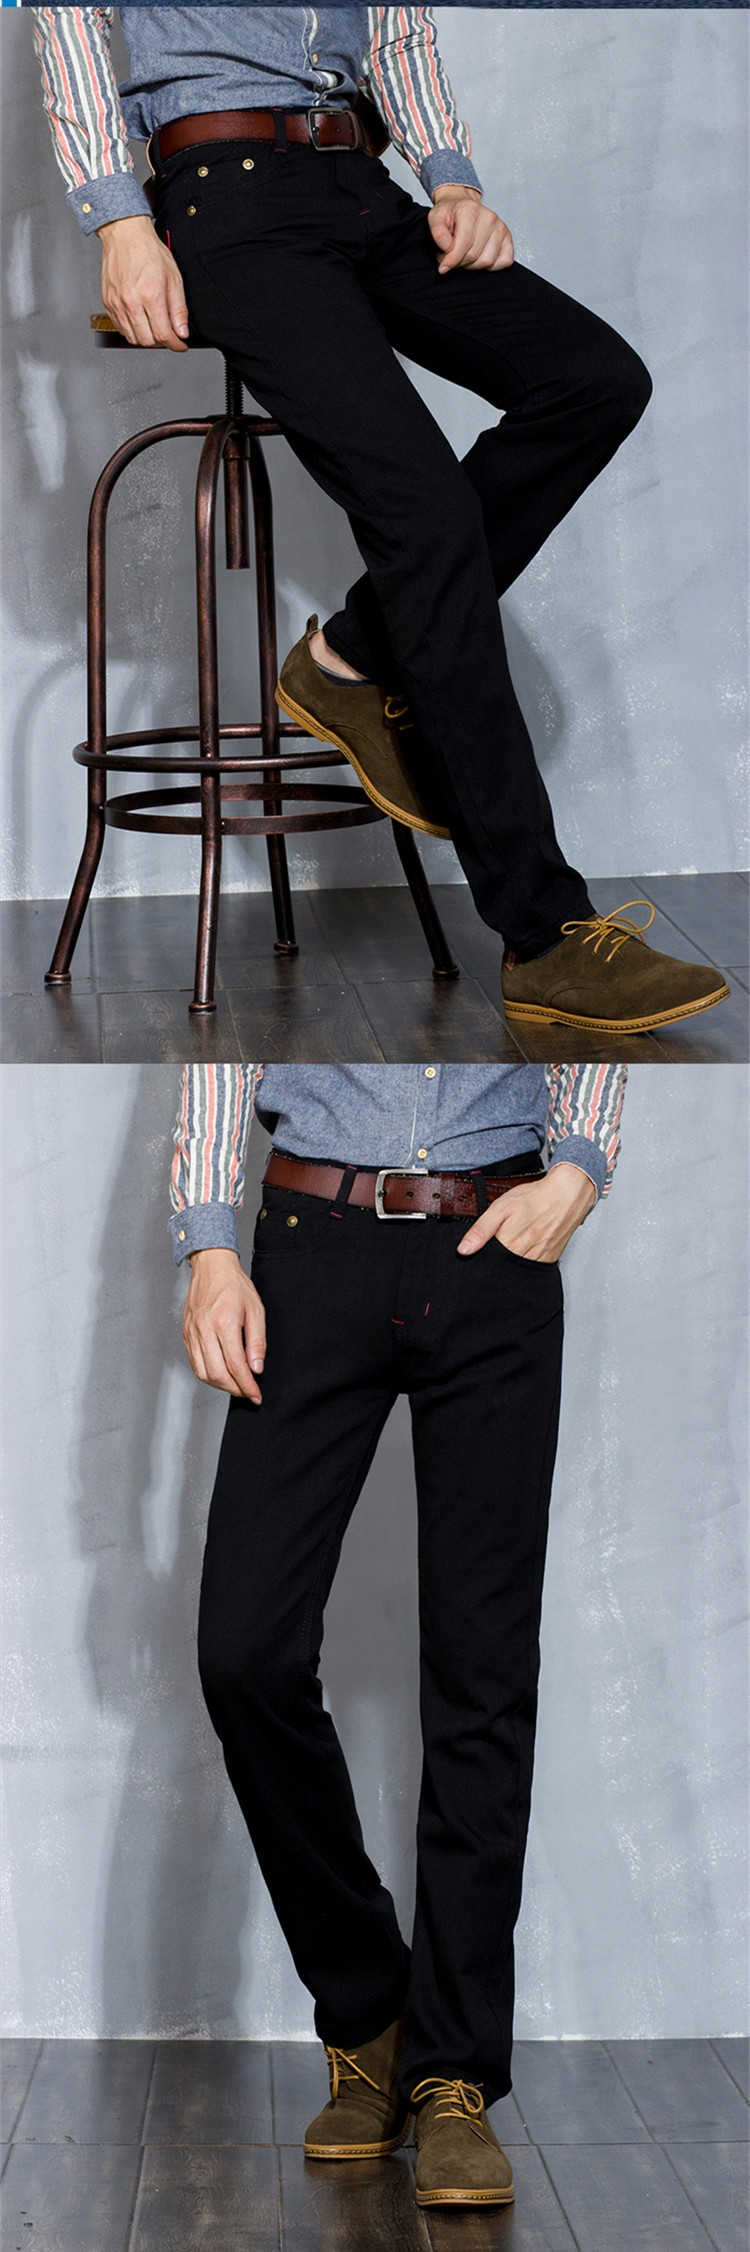 New Fashion Style Black Male Jeans Straight Zipper Fly Youth Popular Men Trousers Slim Looking Solid Good Quality Comfortable